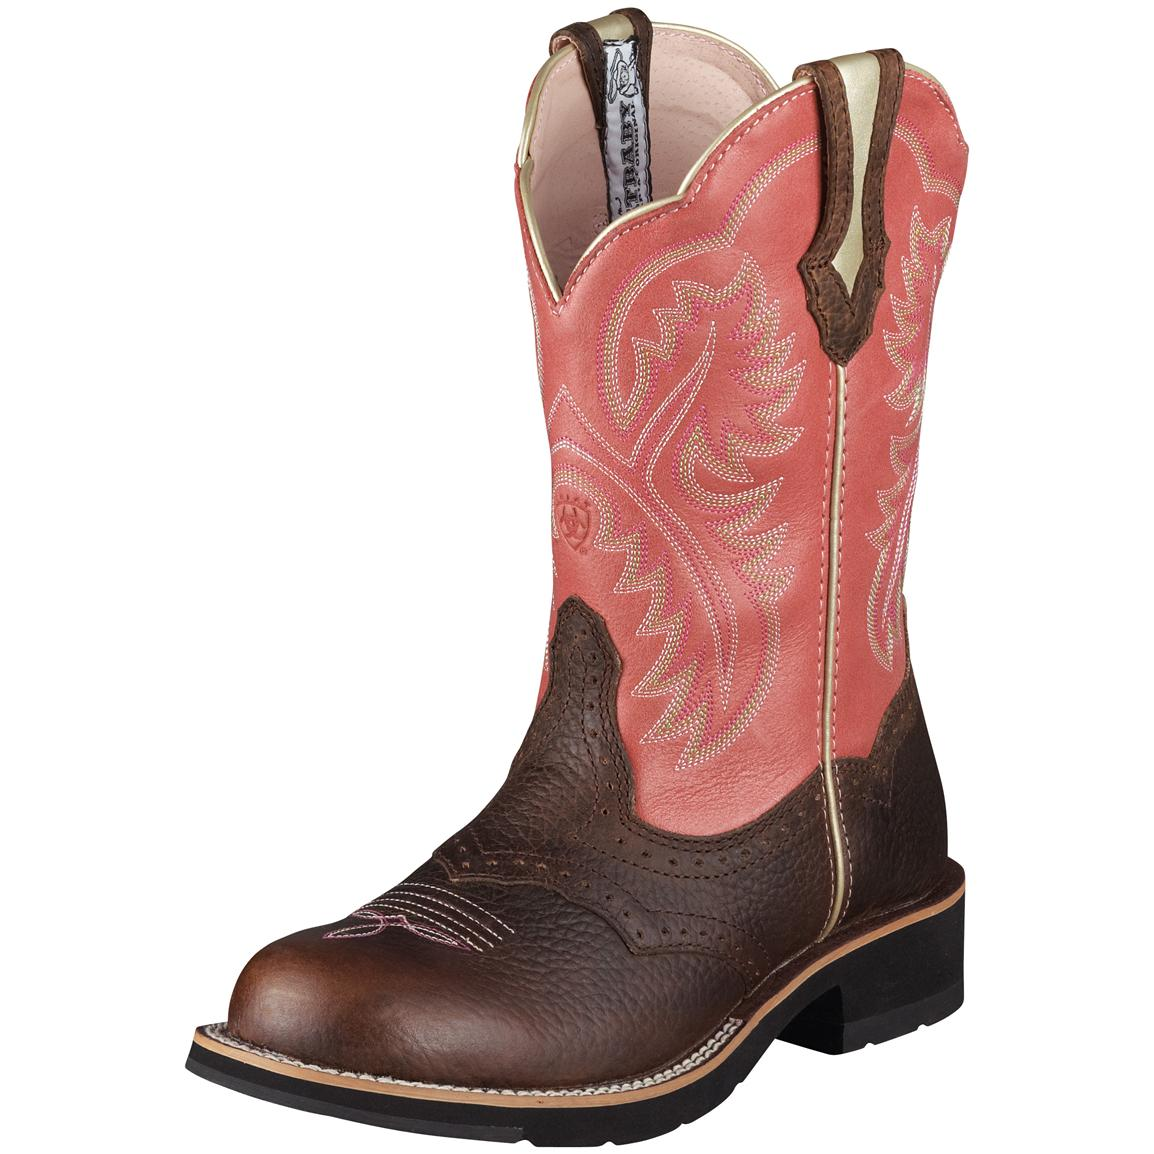 Women's Ariat® 8 inch Showbaby Western Boots, Brown / Rose